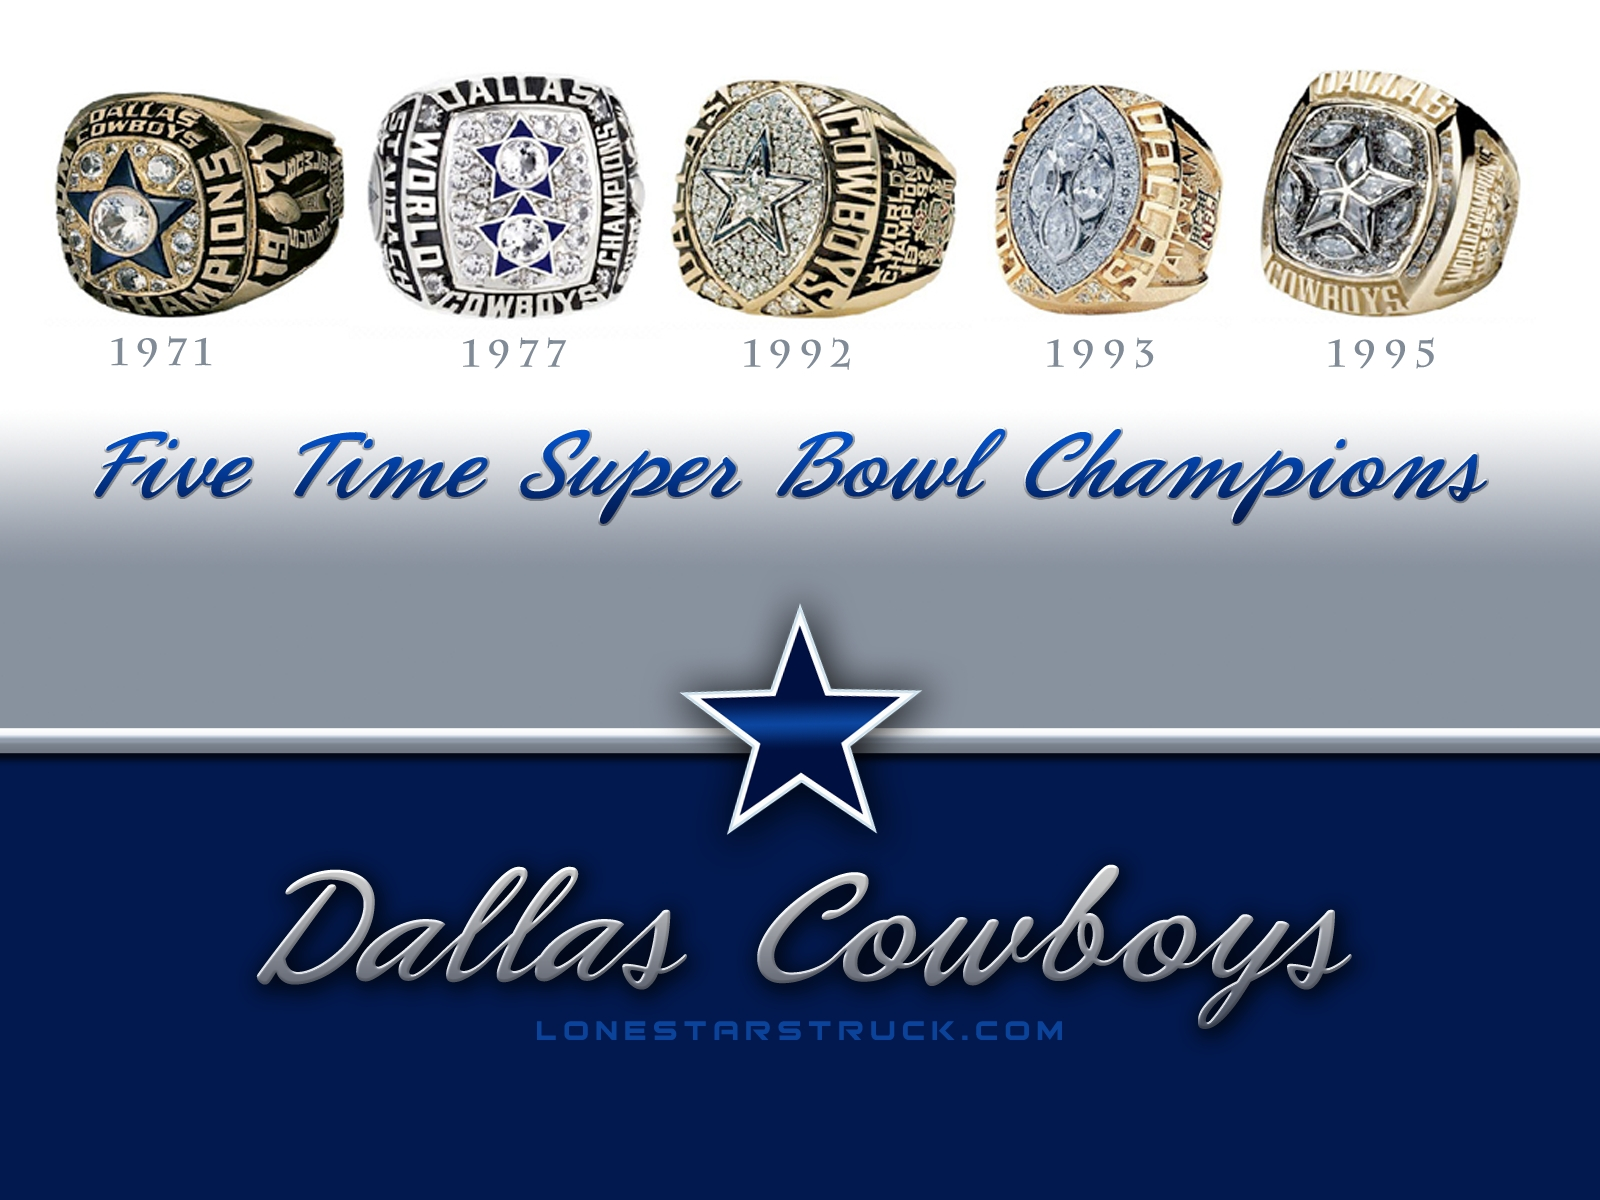 Cowboys Super Bowl Rings Pictures | Cowboys Graphic: 5X in Cowboys Last Super Bowl